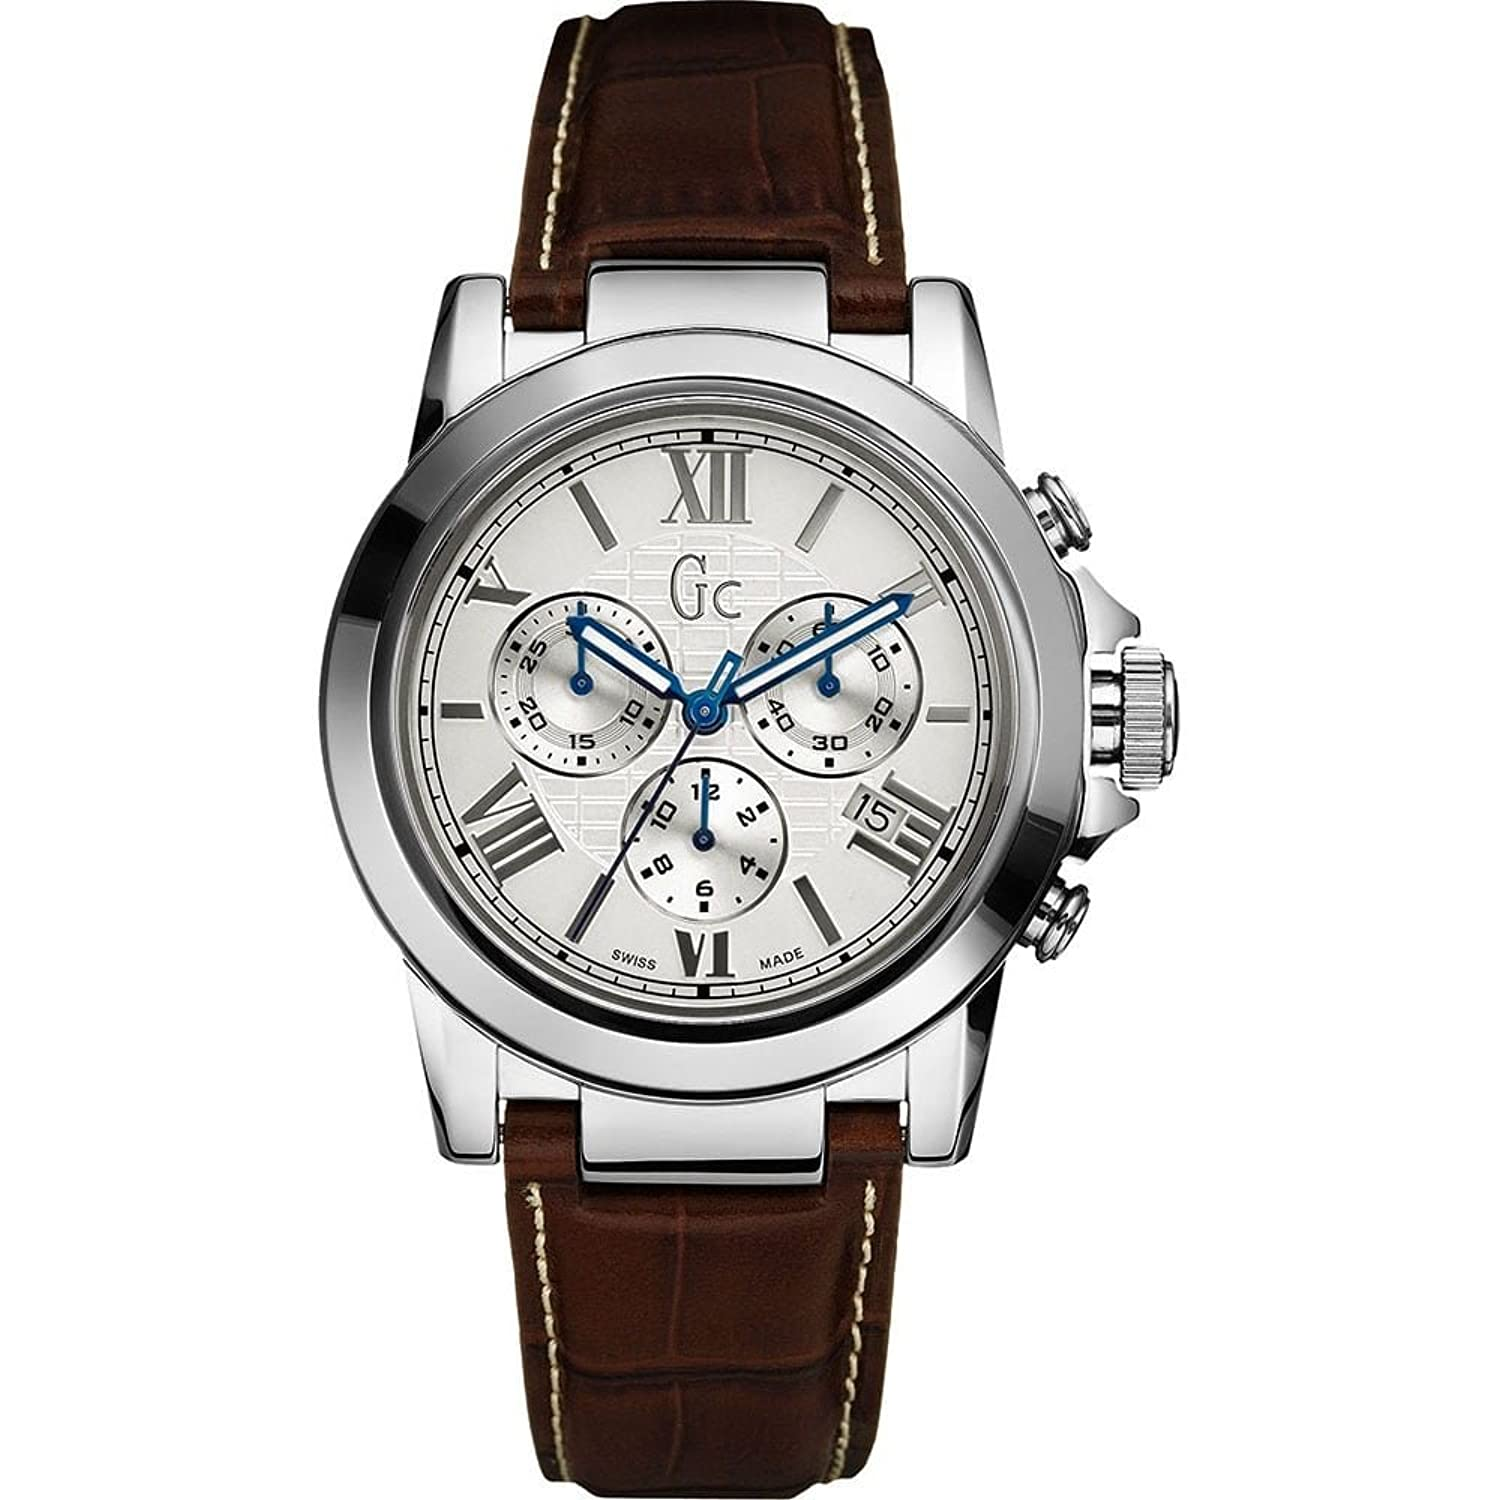 Guess Collection Herren 42mm Chronograph Braun Leder Armband Datum Uhr X41003G1